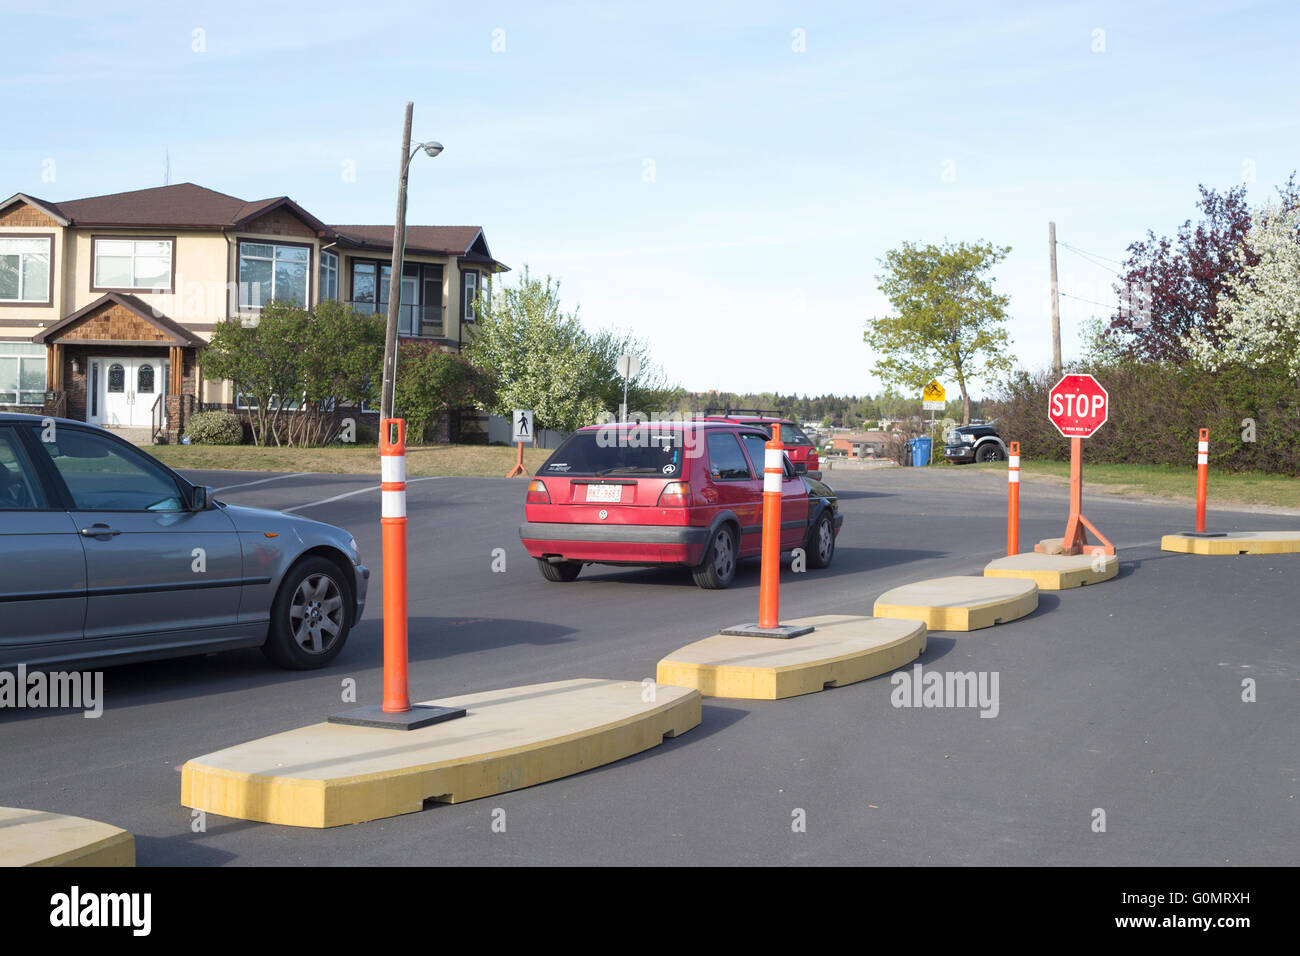 Traffic calming curbs in city street - Stock Image